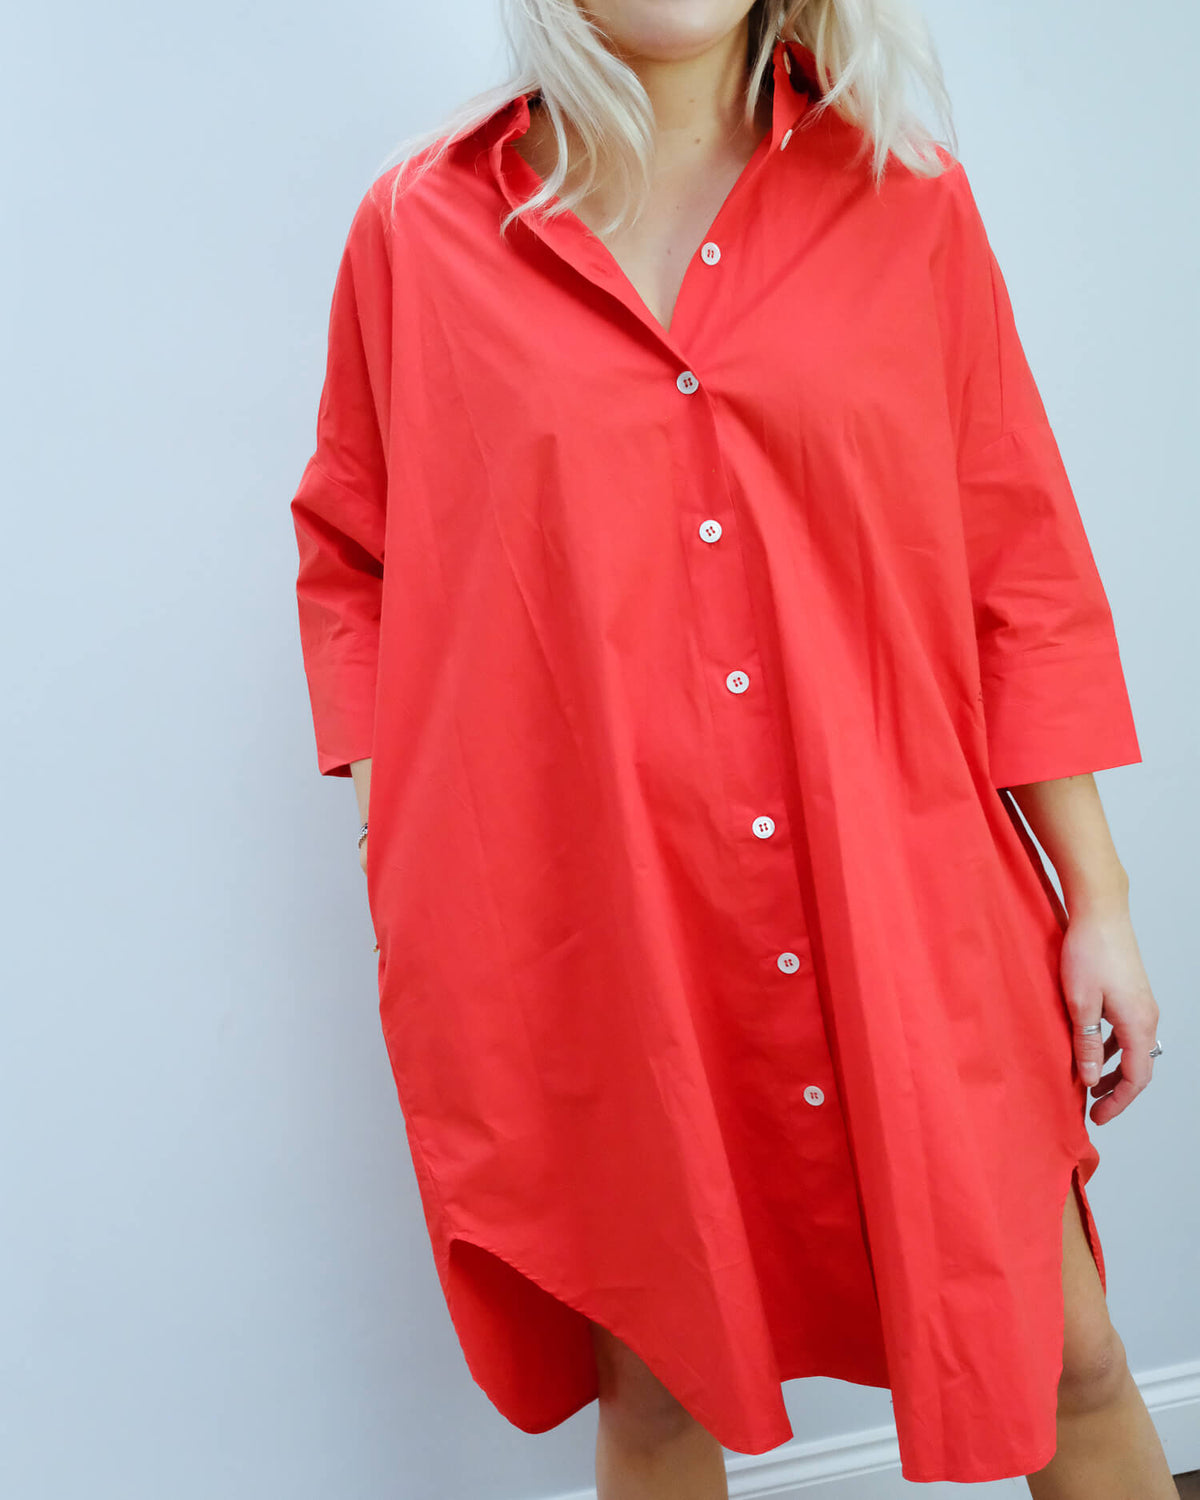 LOR Milo poplin dress in red